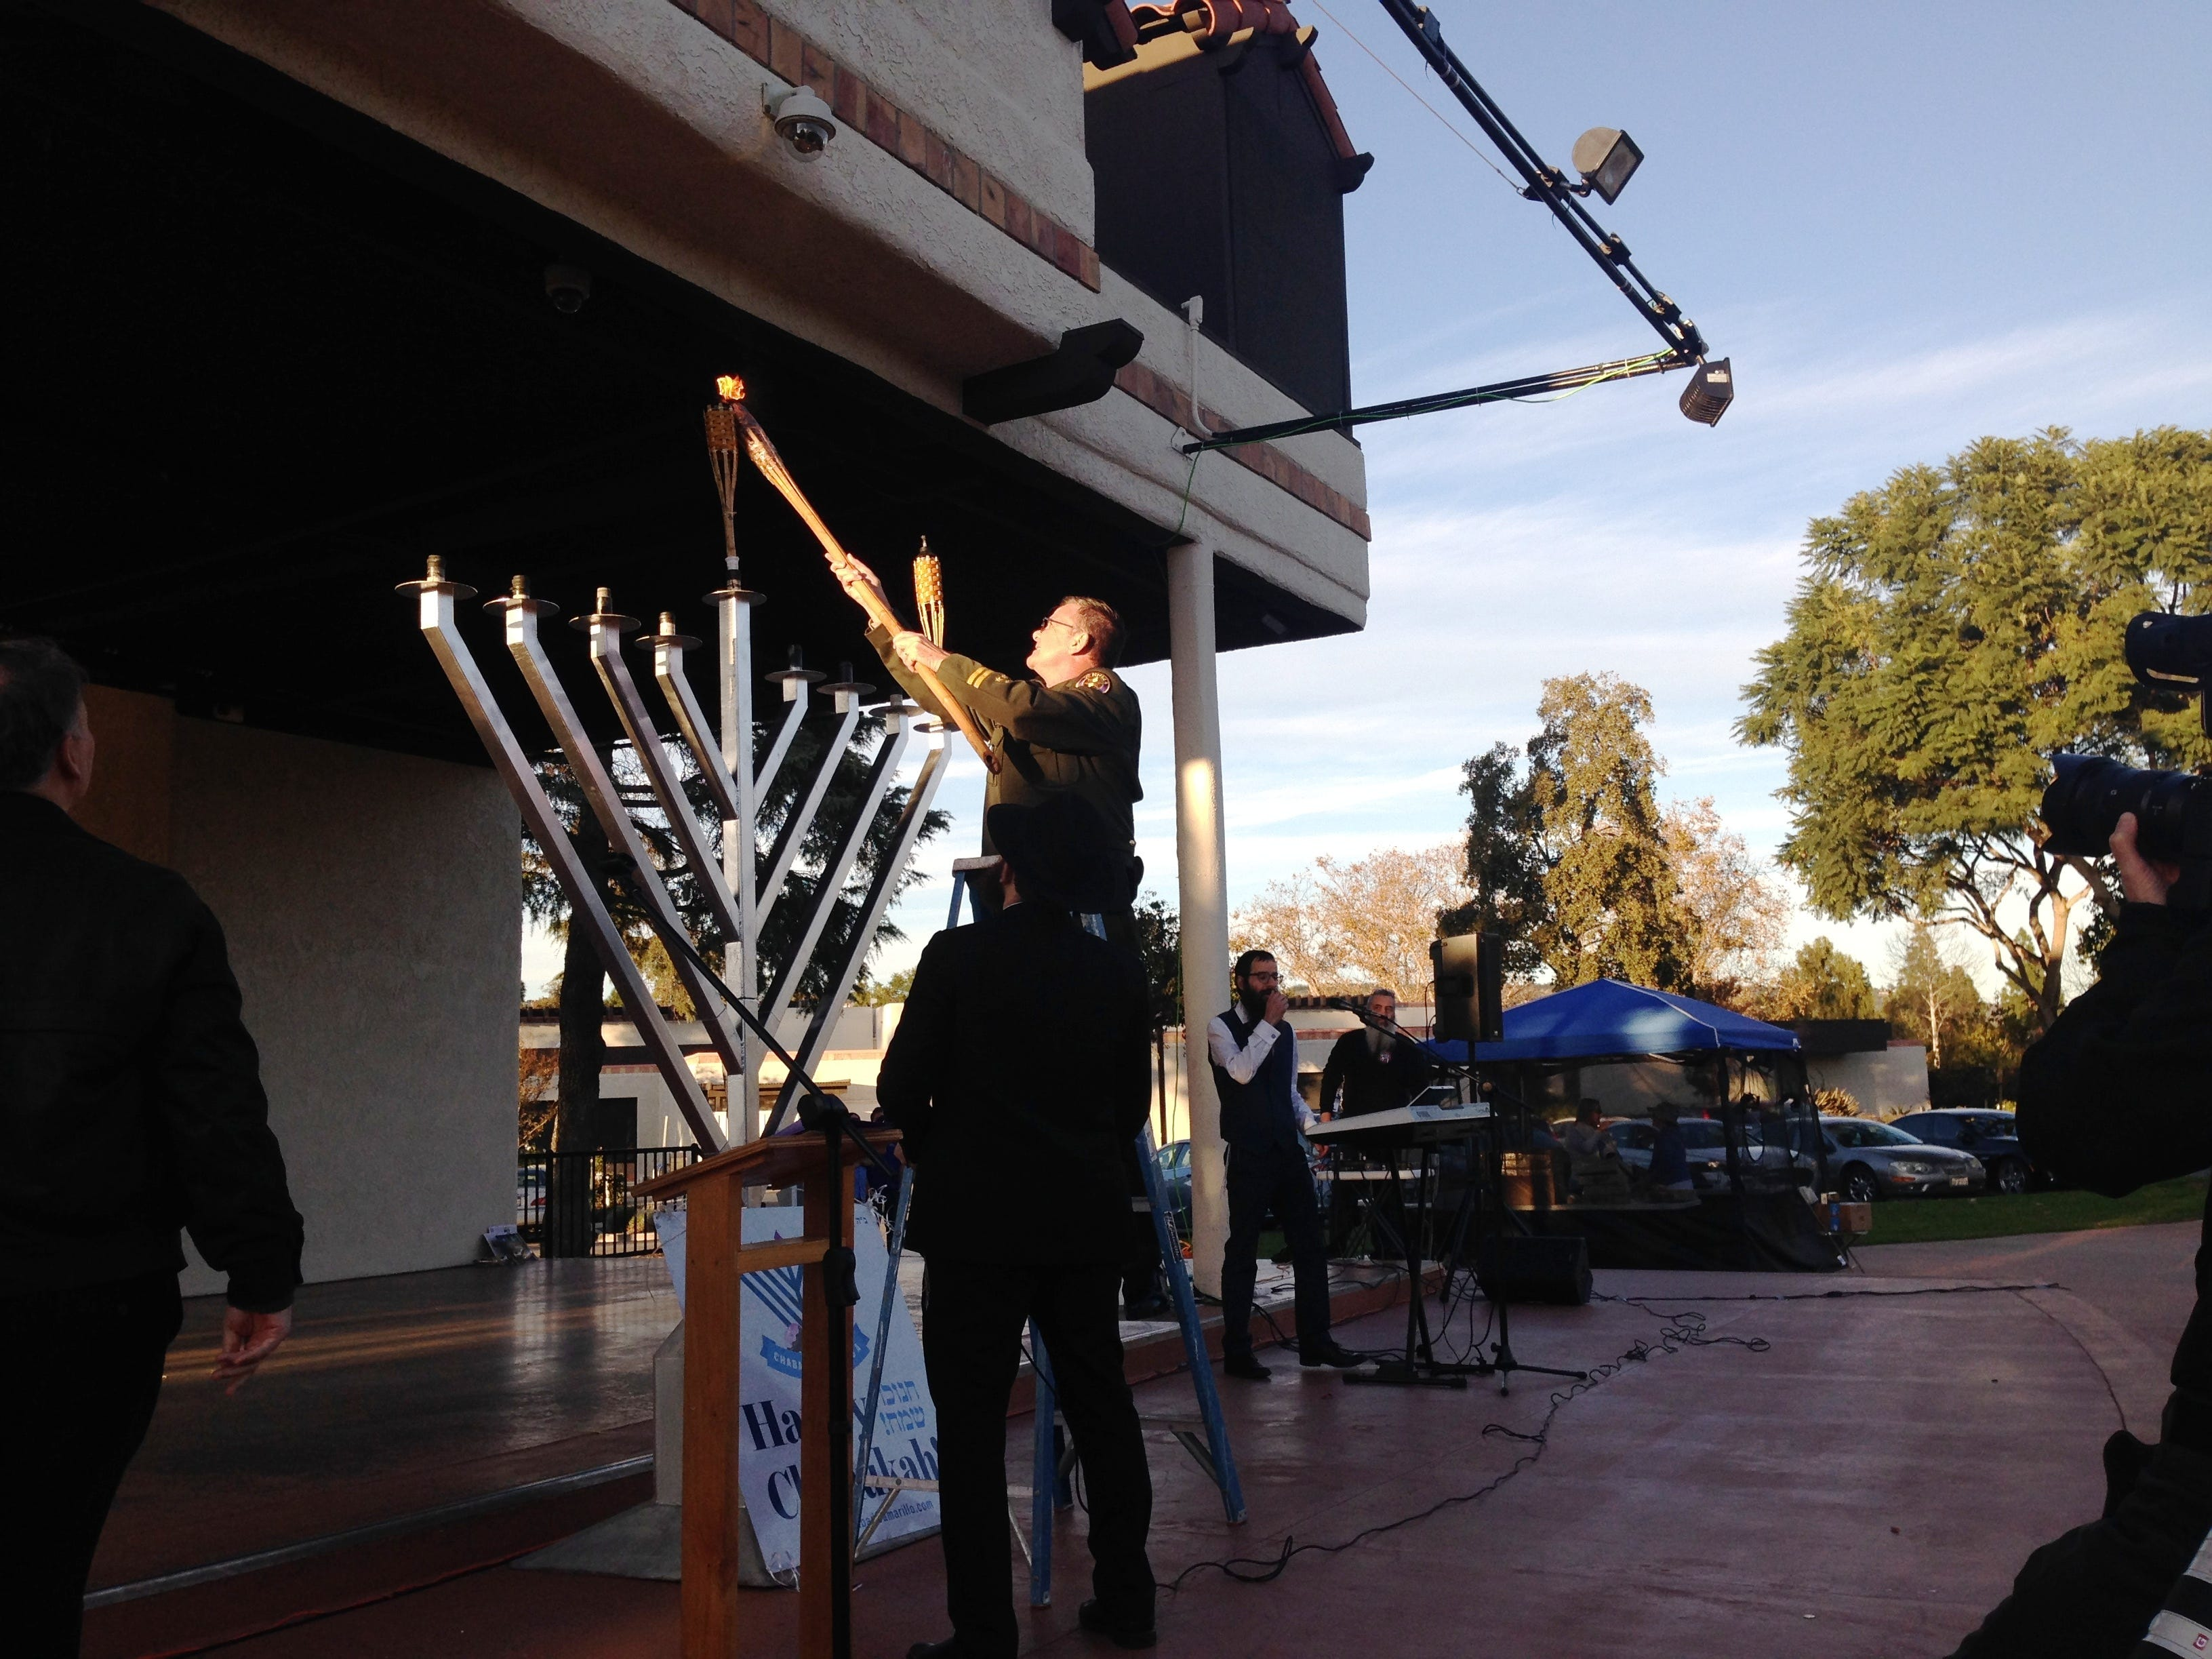 Ventura County Assistant Sheriff Chris Dunn lights a candle on Sunday at Chabad of Camarillo's 16th annual Hanukkah Festival and Grand Menorah Lighting in Constitution Park in Camarillo.